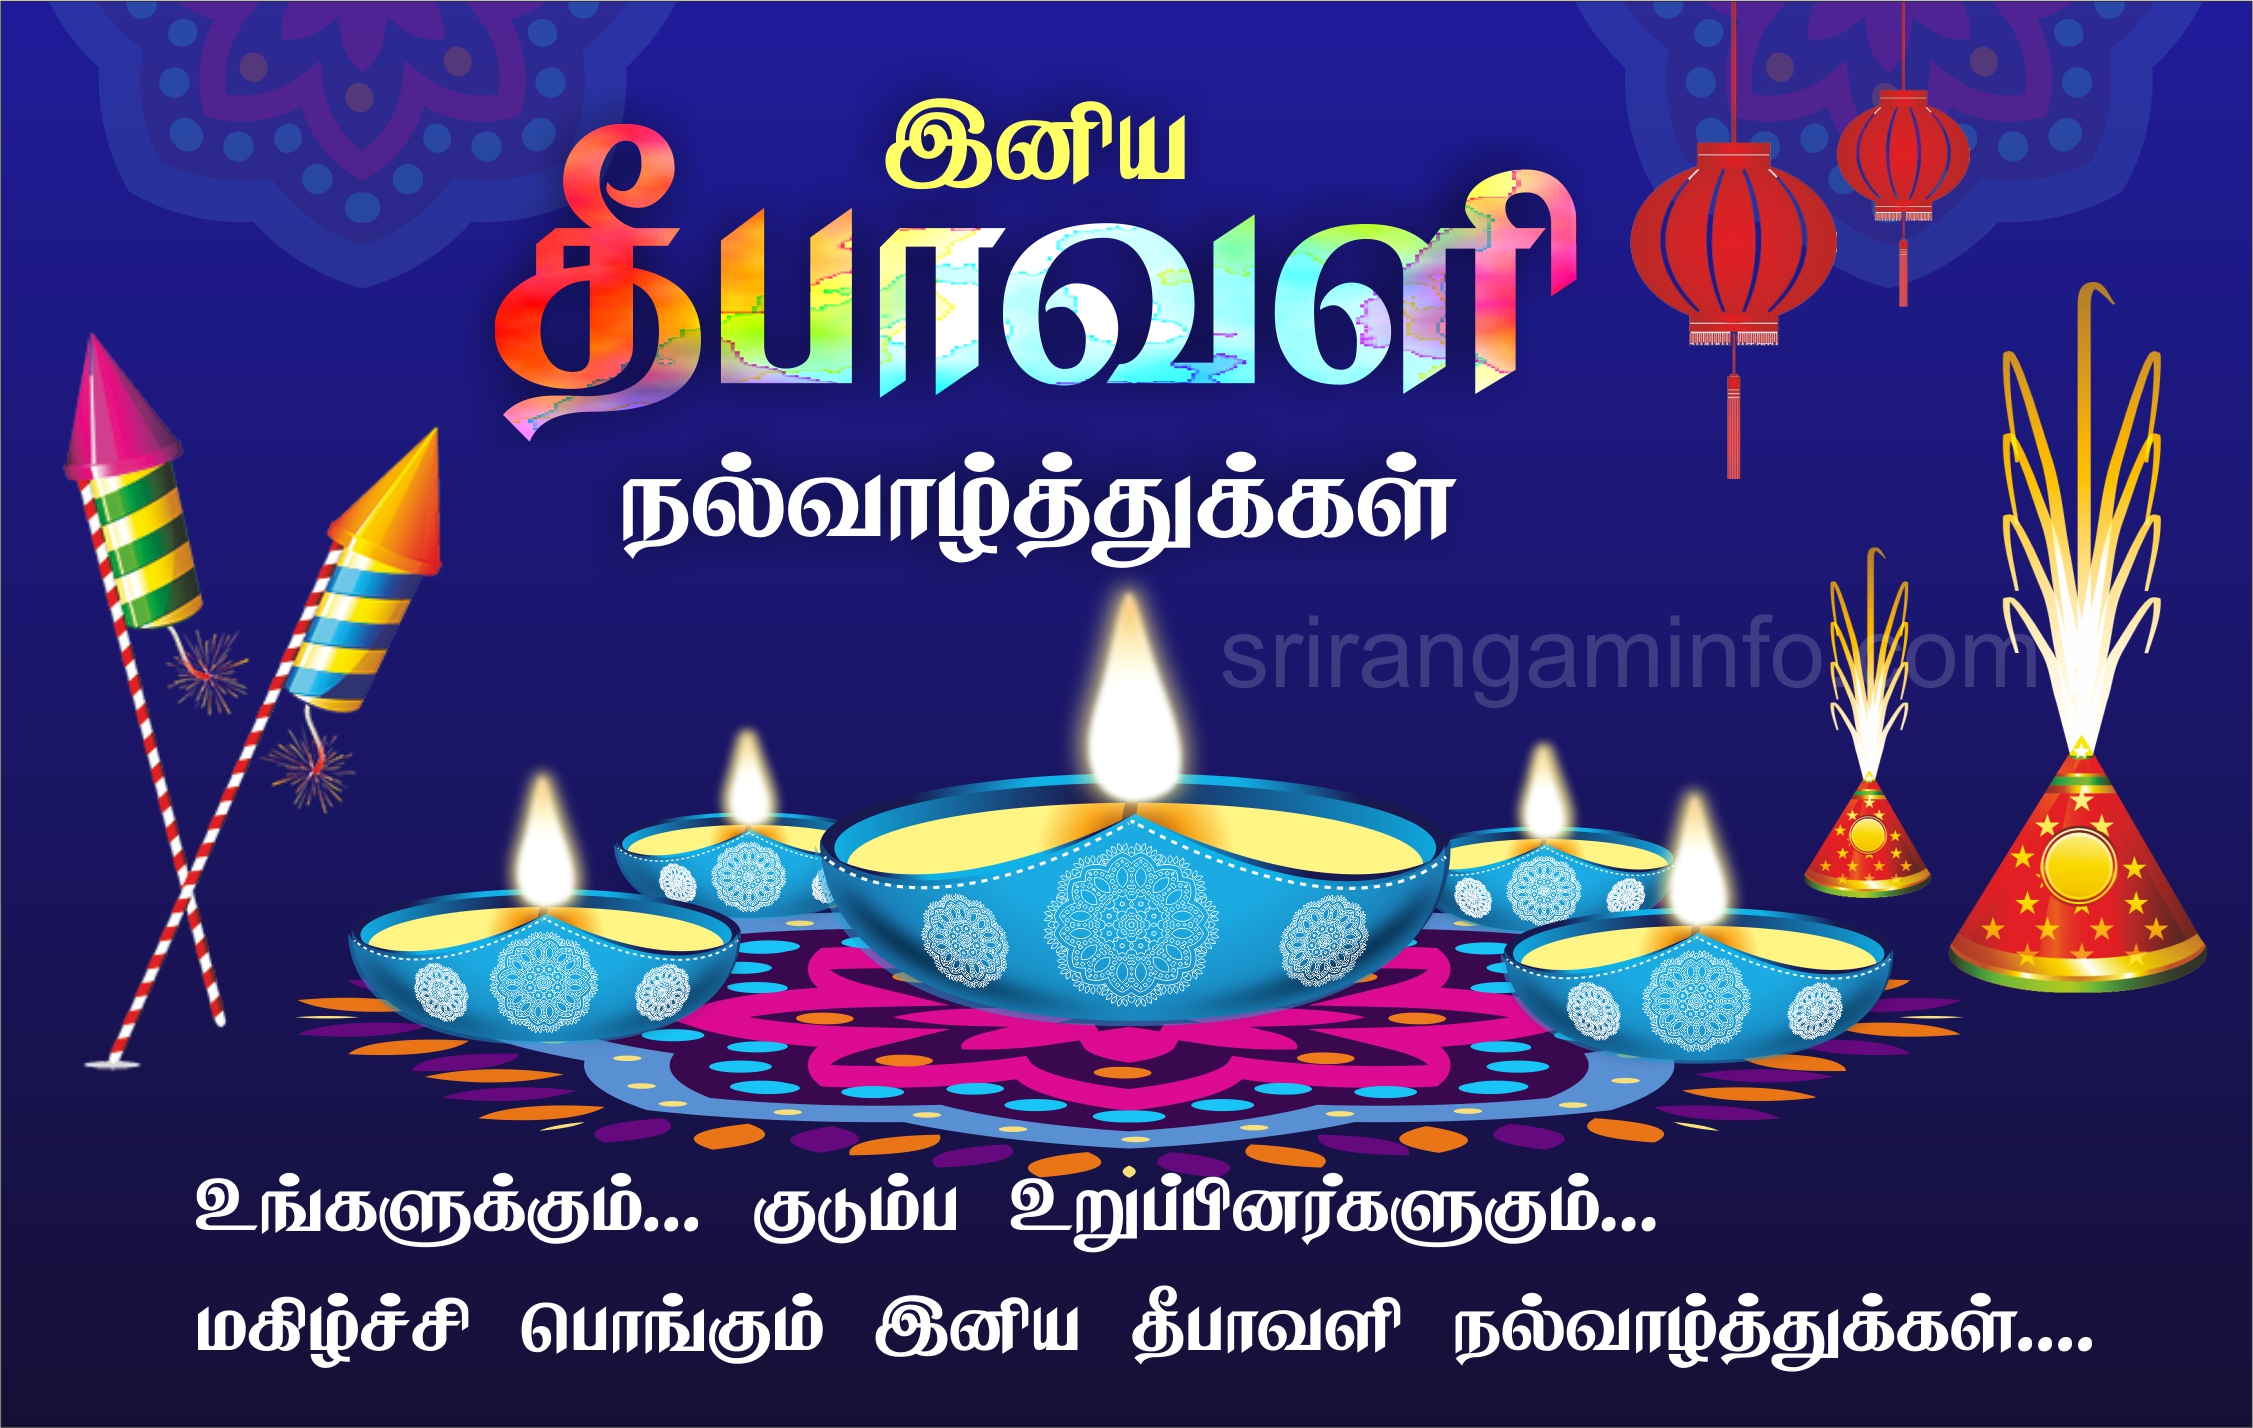 deepavali greetings wishes in tamil